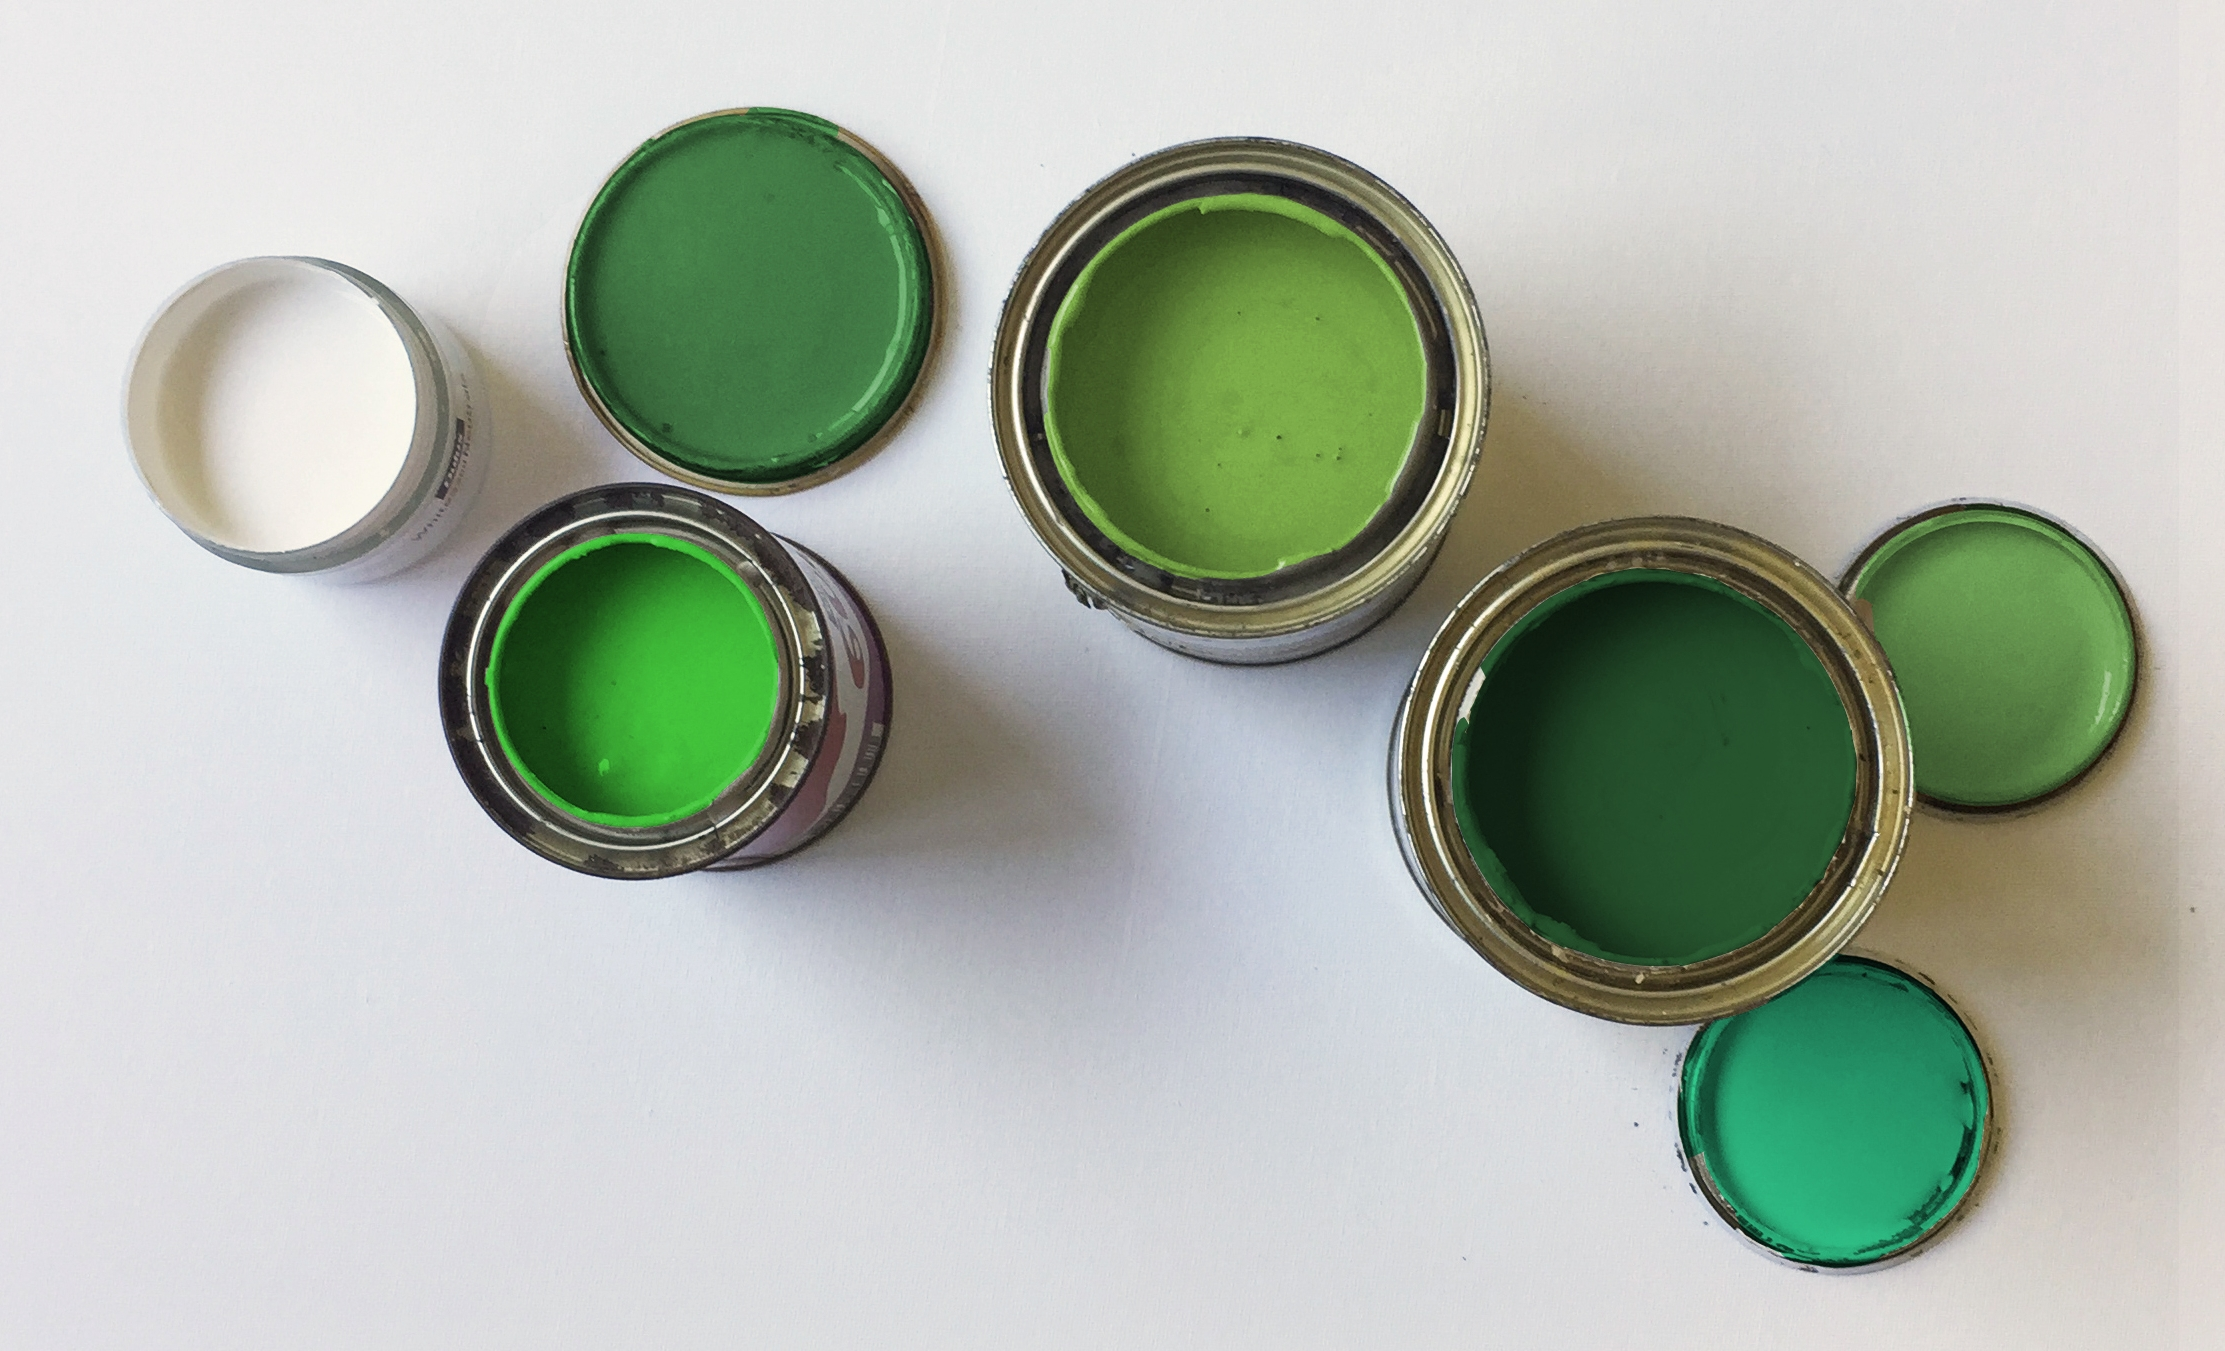 Gorgeous green paint ideas for interiors, exteriors and beyond!Check out our faves below.